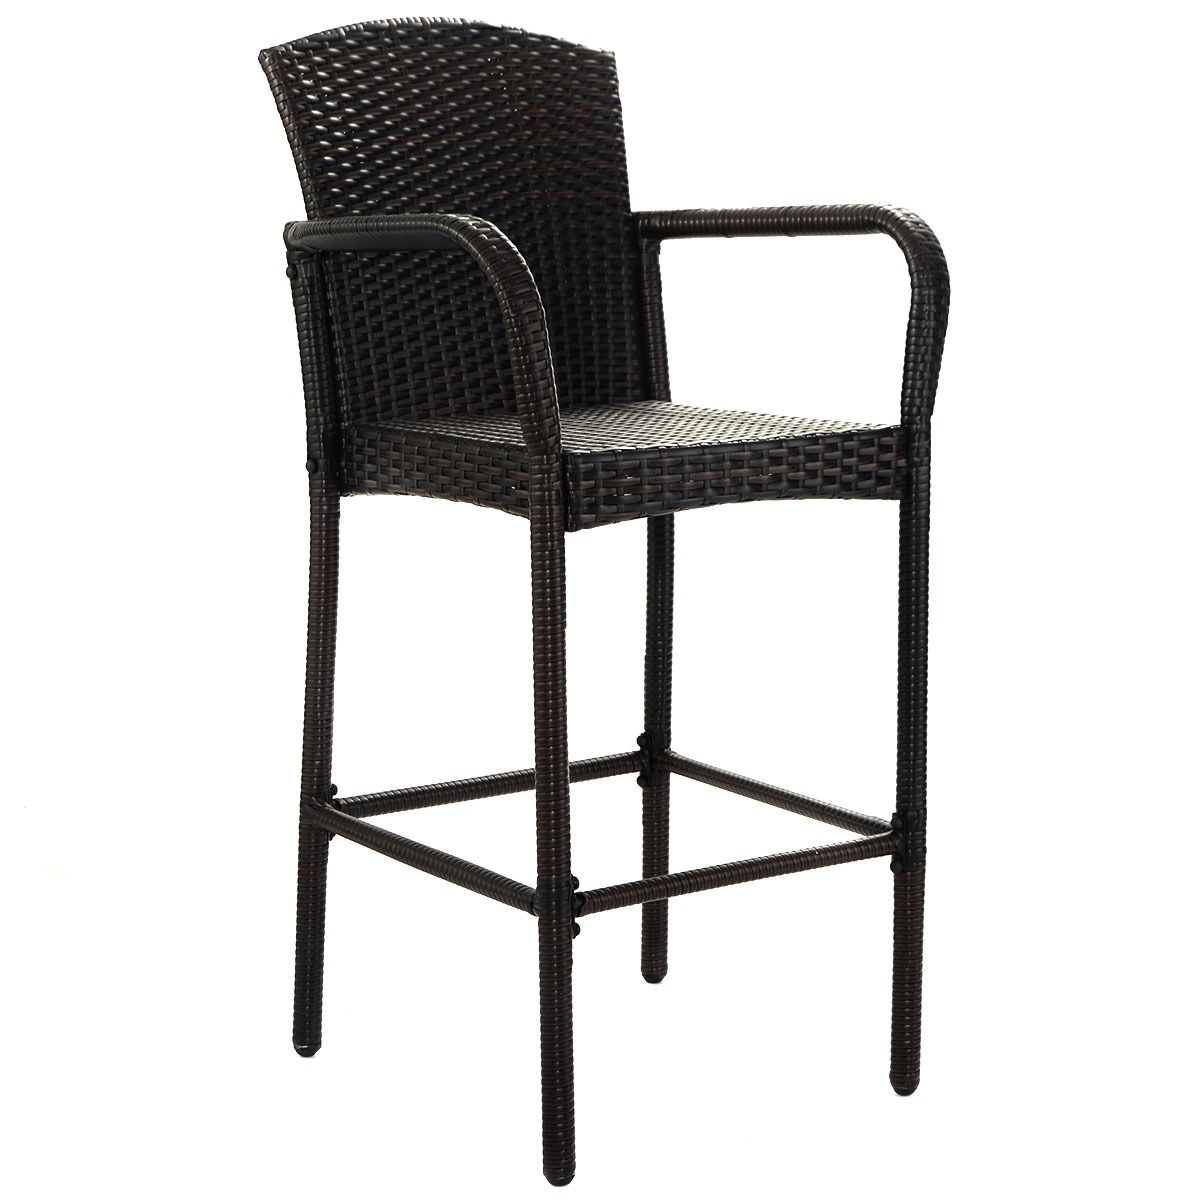 2 Pcs Rattan Wicker Bar Stool High Counter Chair Outdoor Patio Furniture Armrest